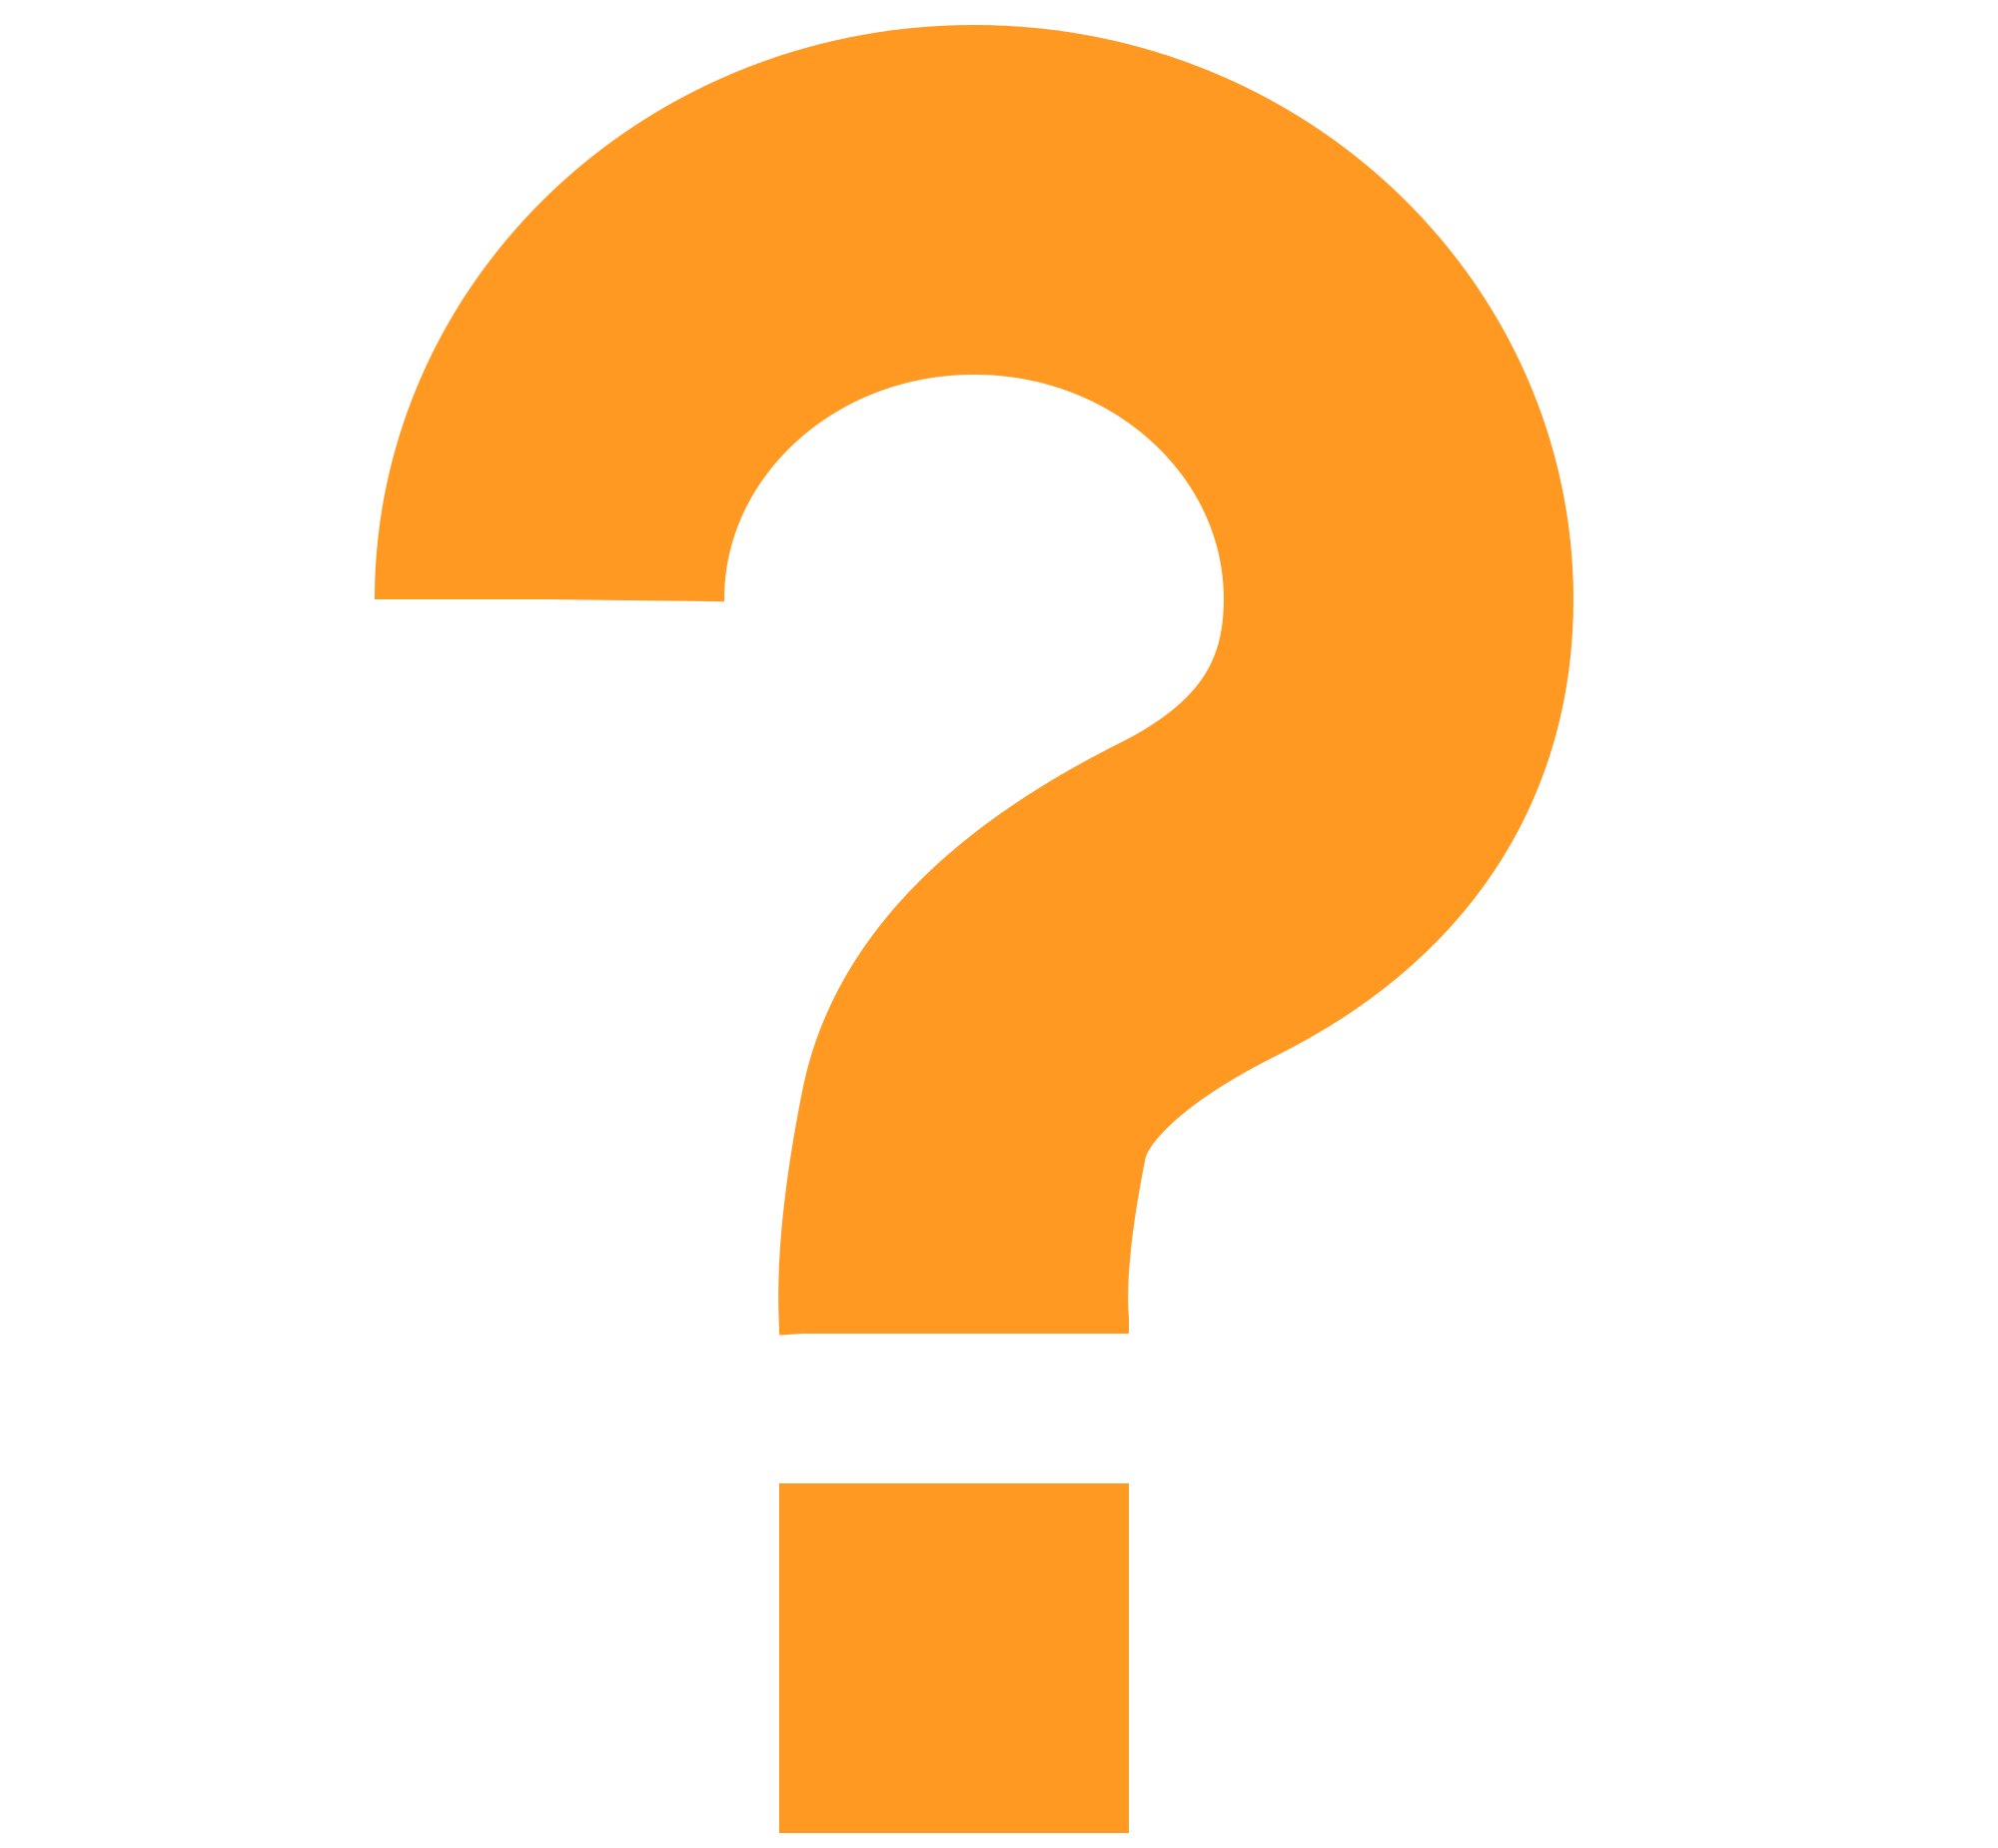 Question mark png image.